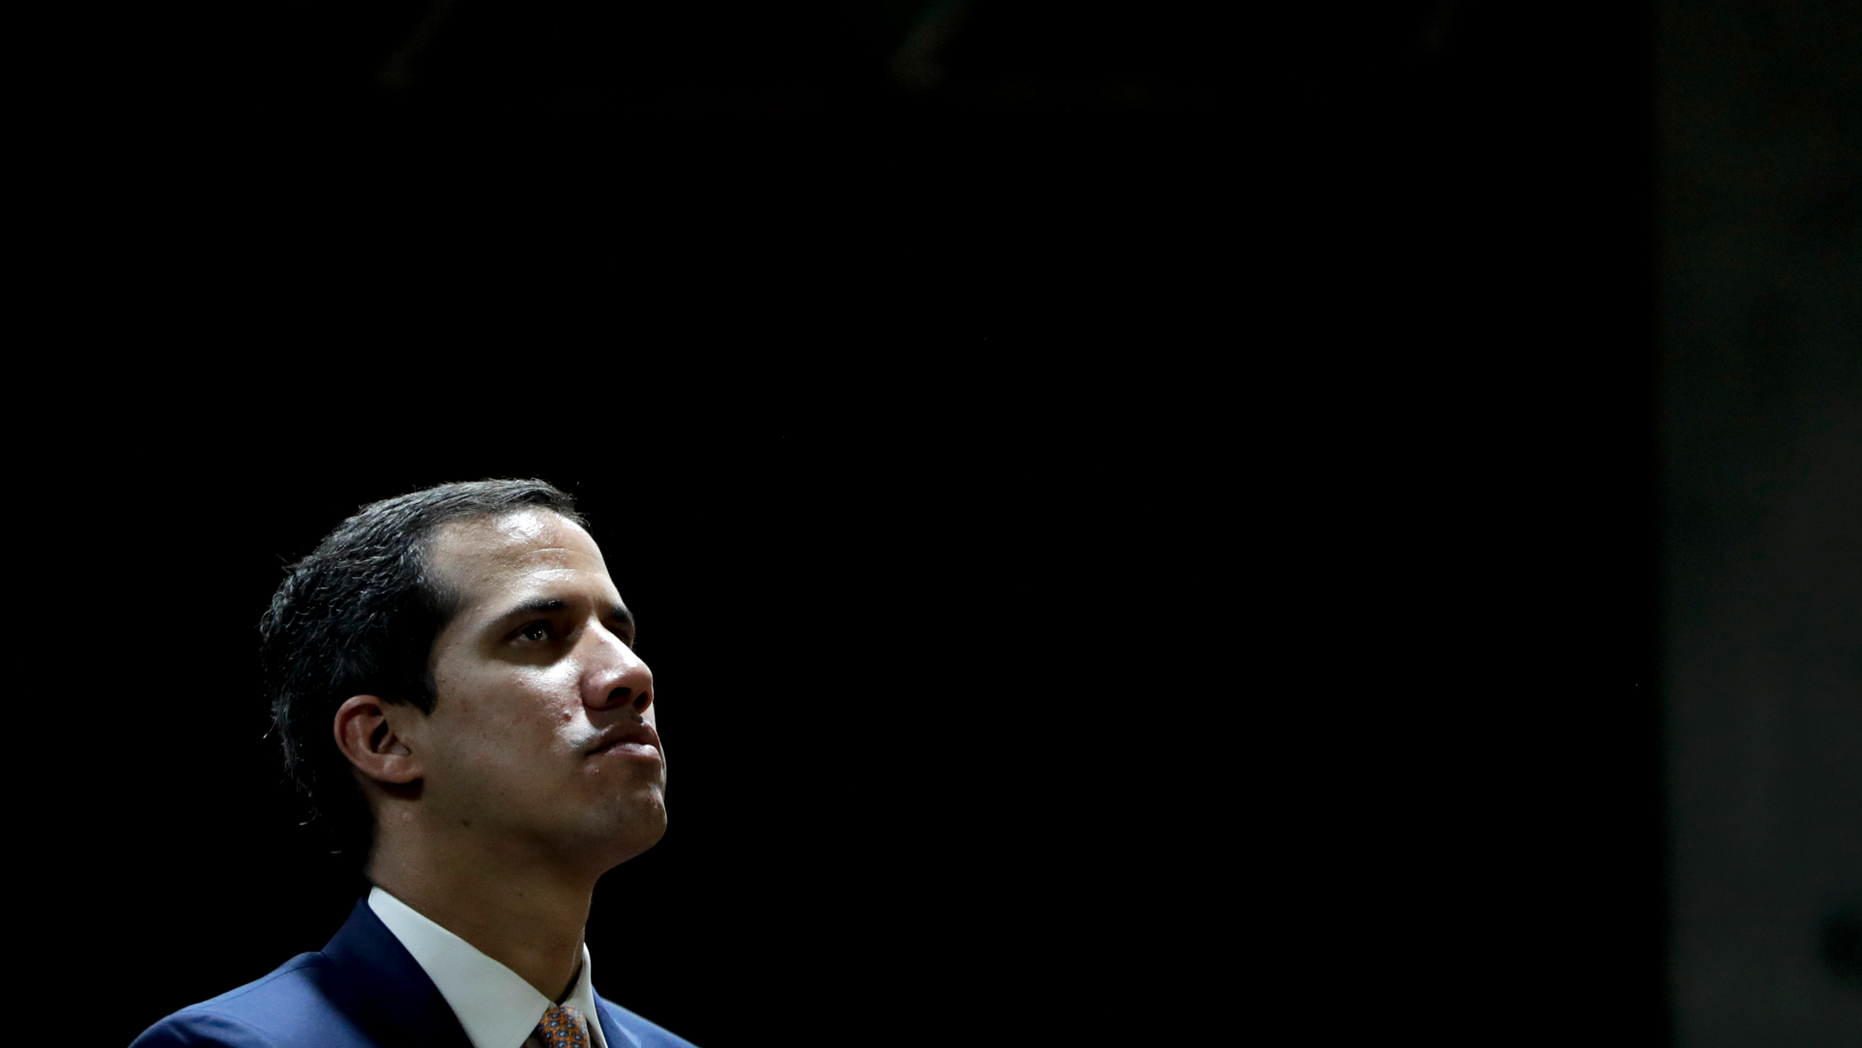 "Juan Guaido, Venezuelan opposition leader and self-proclaimed interim president, attends a meeting at a university in Caracas, Venezuela, Monday, April 1, 2019. He's backed by more than 50 nations, which consider Nicolas Maduro's presidency illegitimate following what they call sham elections last year. ""We must unite now more than ever,"" said Guaido, speaking at the university. ""We must mount the biggest demonstration so far to reject what's happening."" (AP Photo/Natacha Pisarenko)"